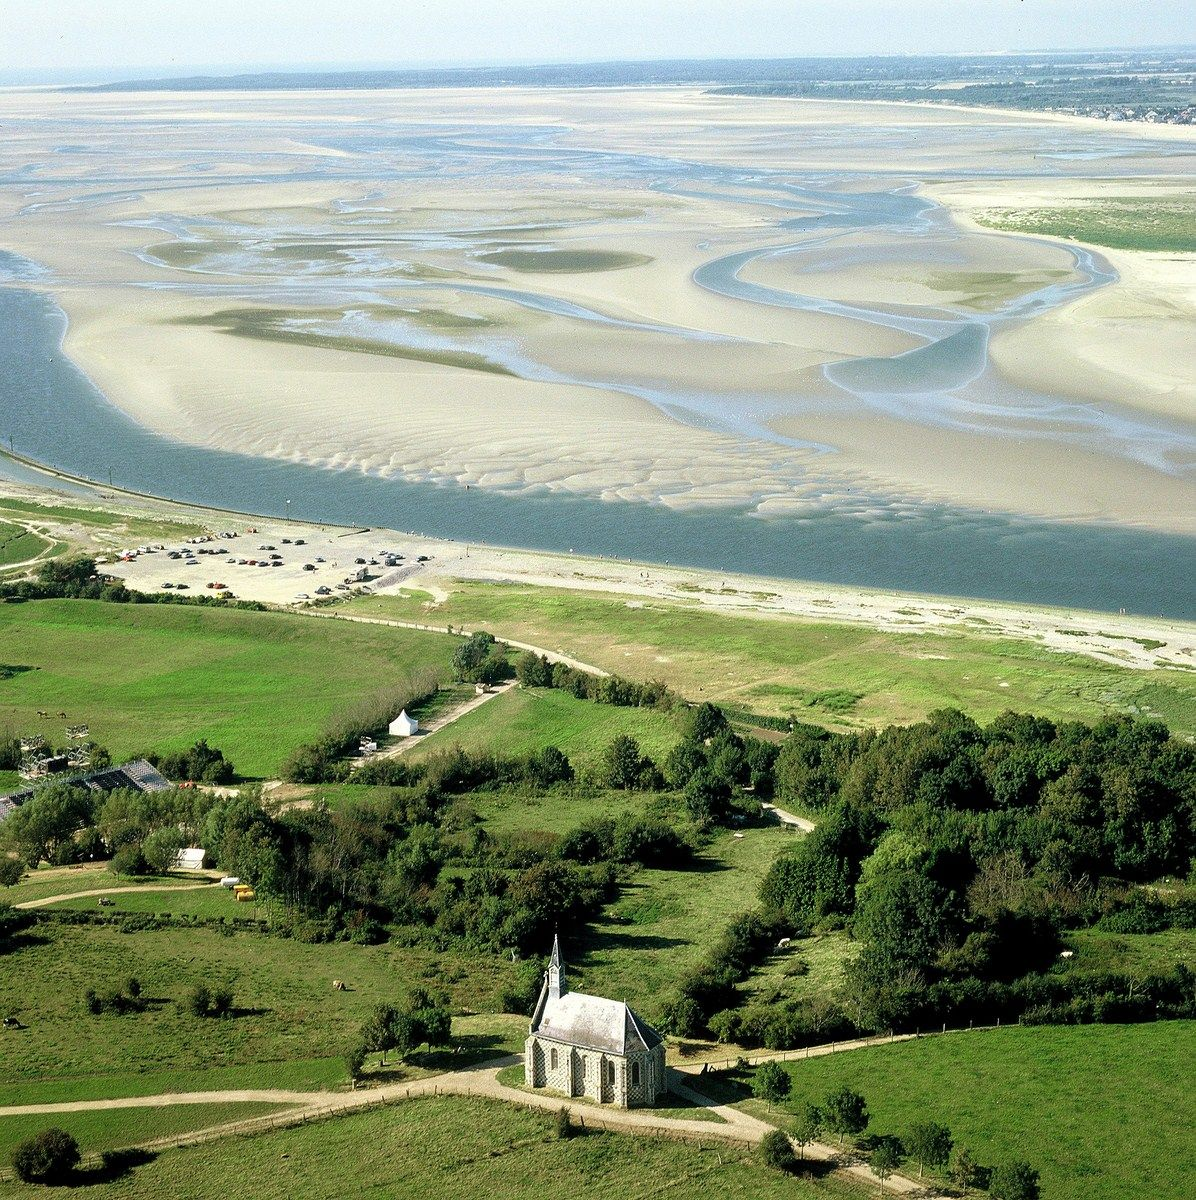 la baie de somme picardie france check everyone s creative travel spot pinterest. Black Bedroom Furniture Sets. Home Design Ideas